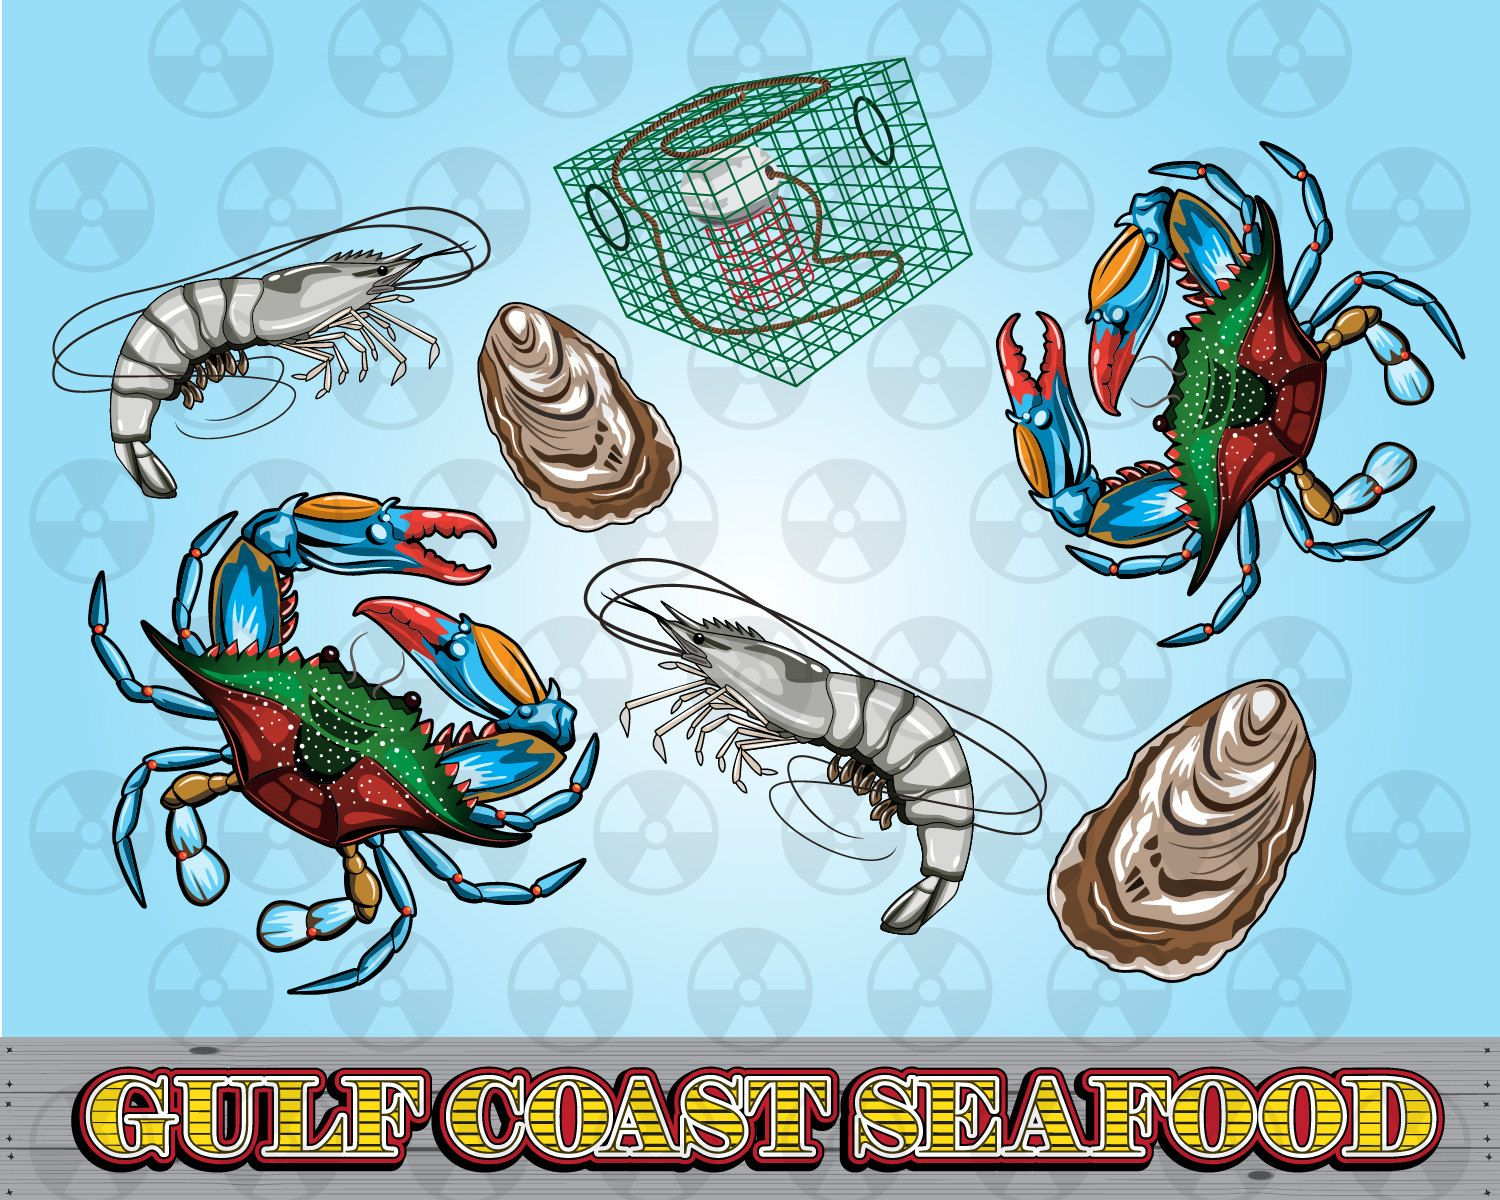 louisiana vector clipart gulf coast clipart blue crab digital cartoon seafood clipart scrapbook making instant download by digitalmeltdown on etsy [ 1500 x 1200 Pixel ]